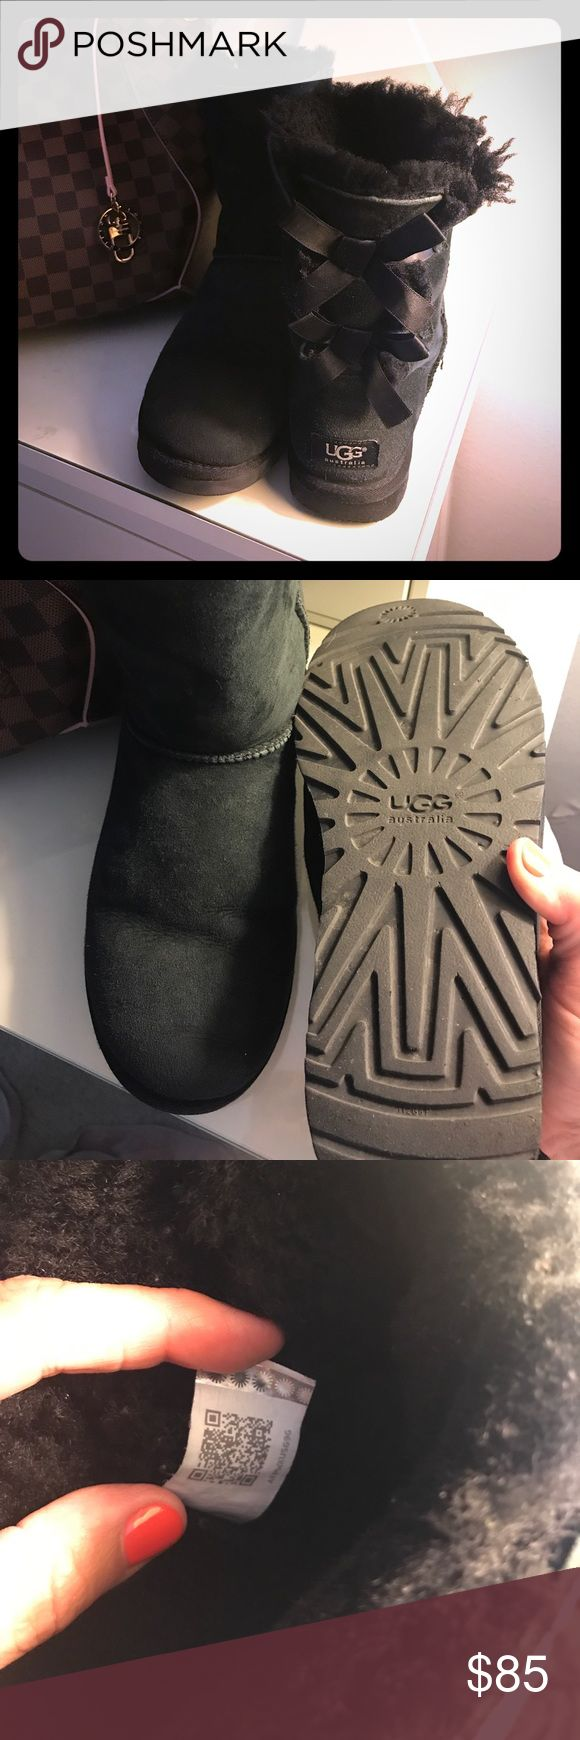 ❤️Authentic UGG Bailey Bow Black❤️ Excellent used condition!  No holes or tears!  No box, purchased at Nordstrom. UGG Shoes